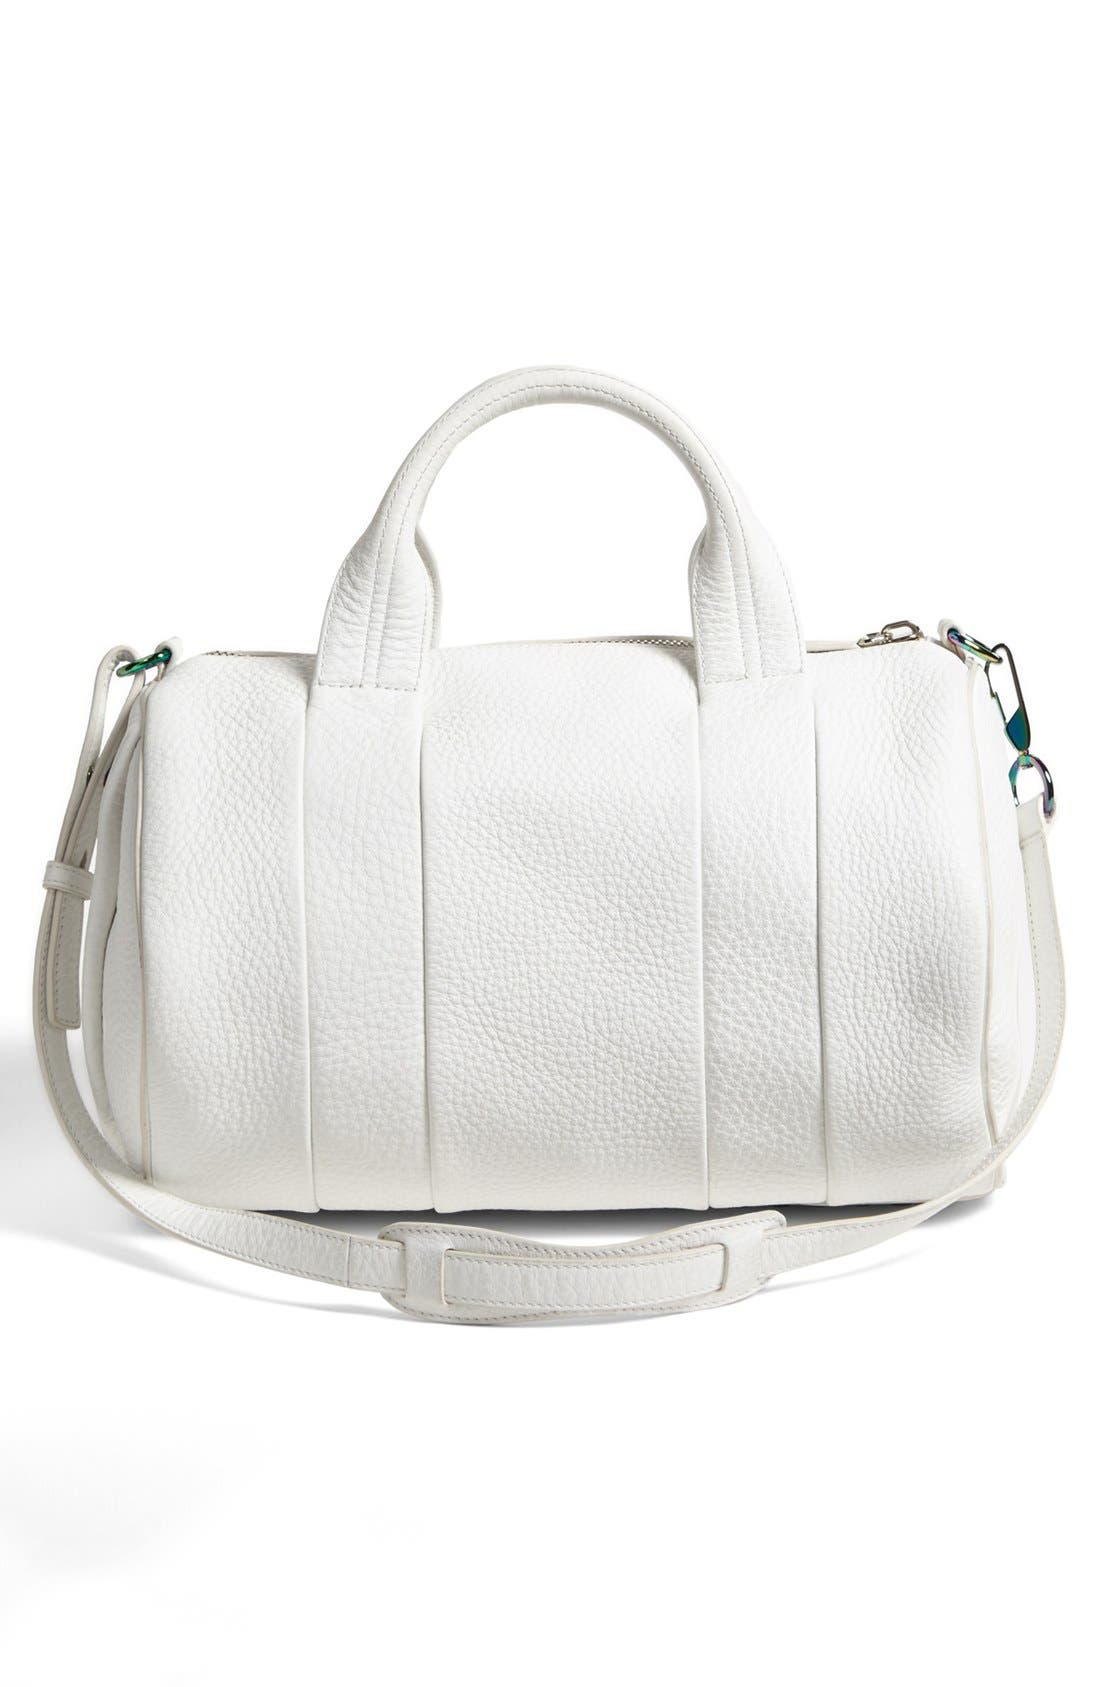 Alternate Image 3  - Alexander Wang 'Rocco - Iridescent' Leather Satchel